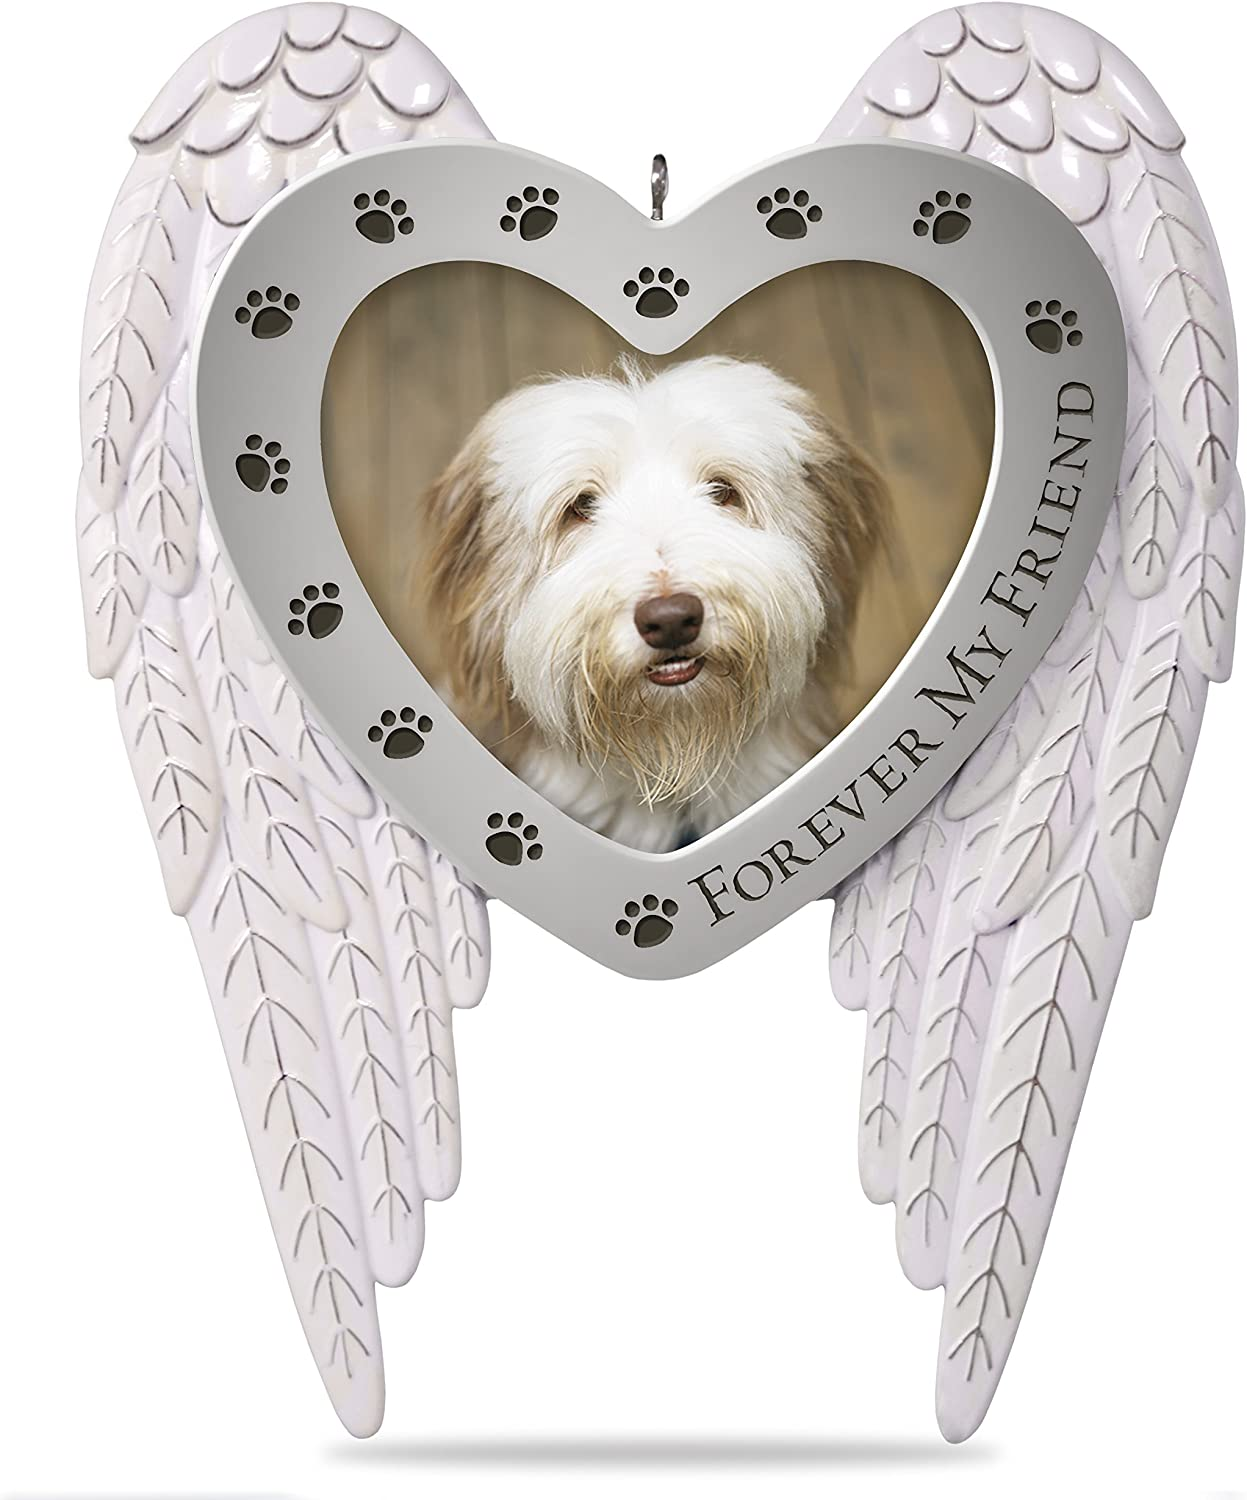 Hallmark Keepsake Christmas Ornament 2018 Year Dated Pet Memorial Gift, Picture Frame, Photo Frame, Bereavement Forever my Friend Metal